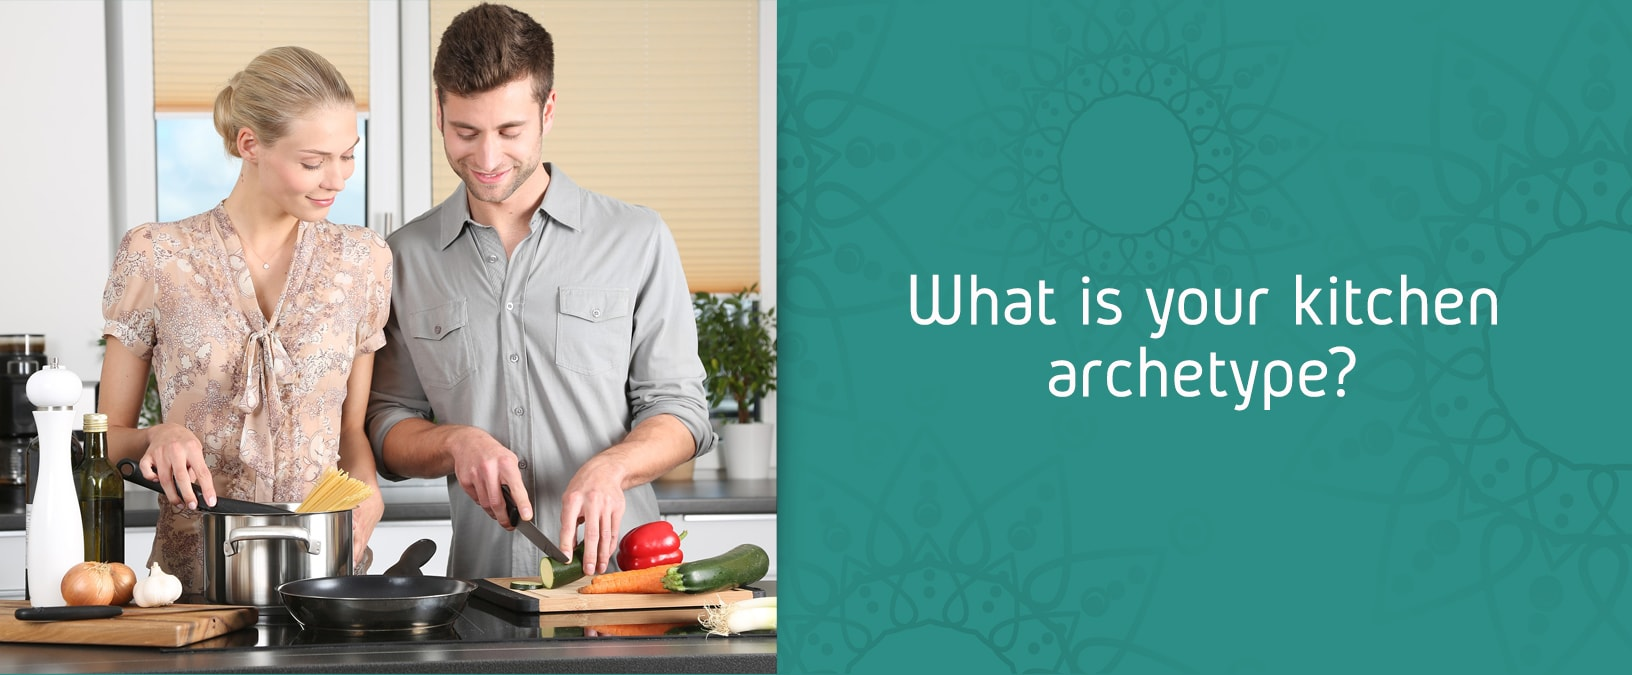 What Is Your Kitchen Archetype